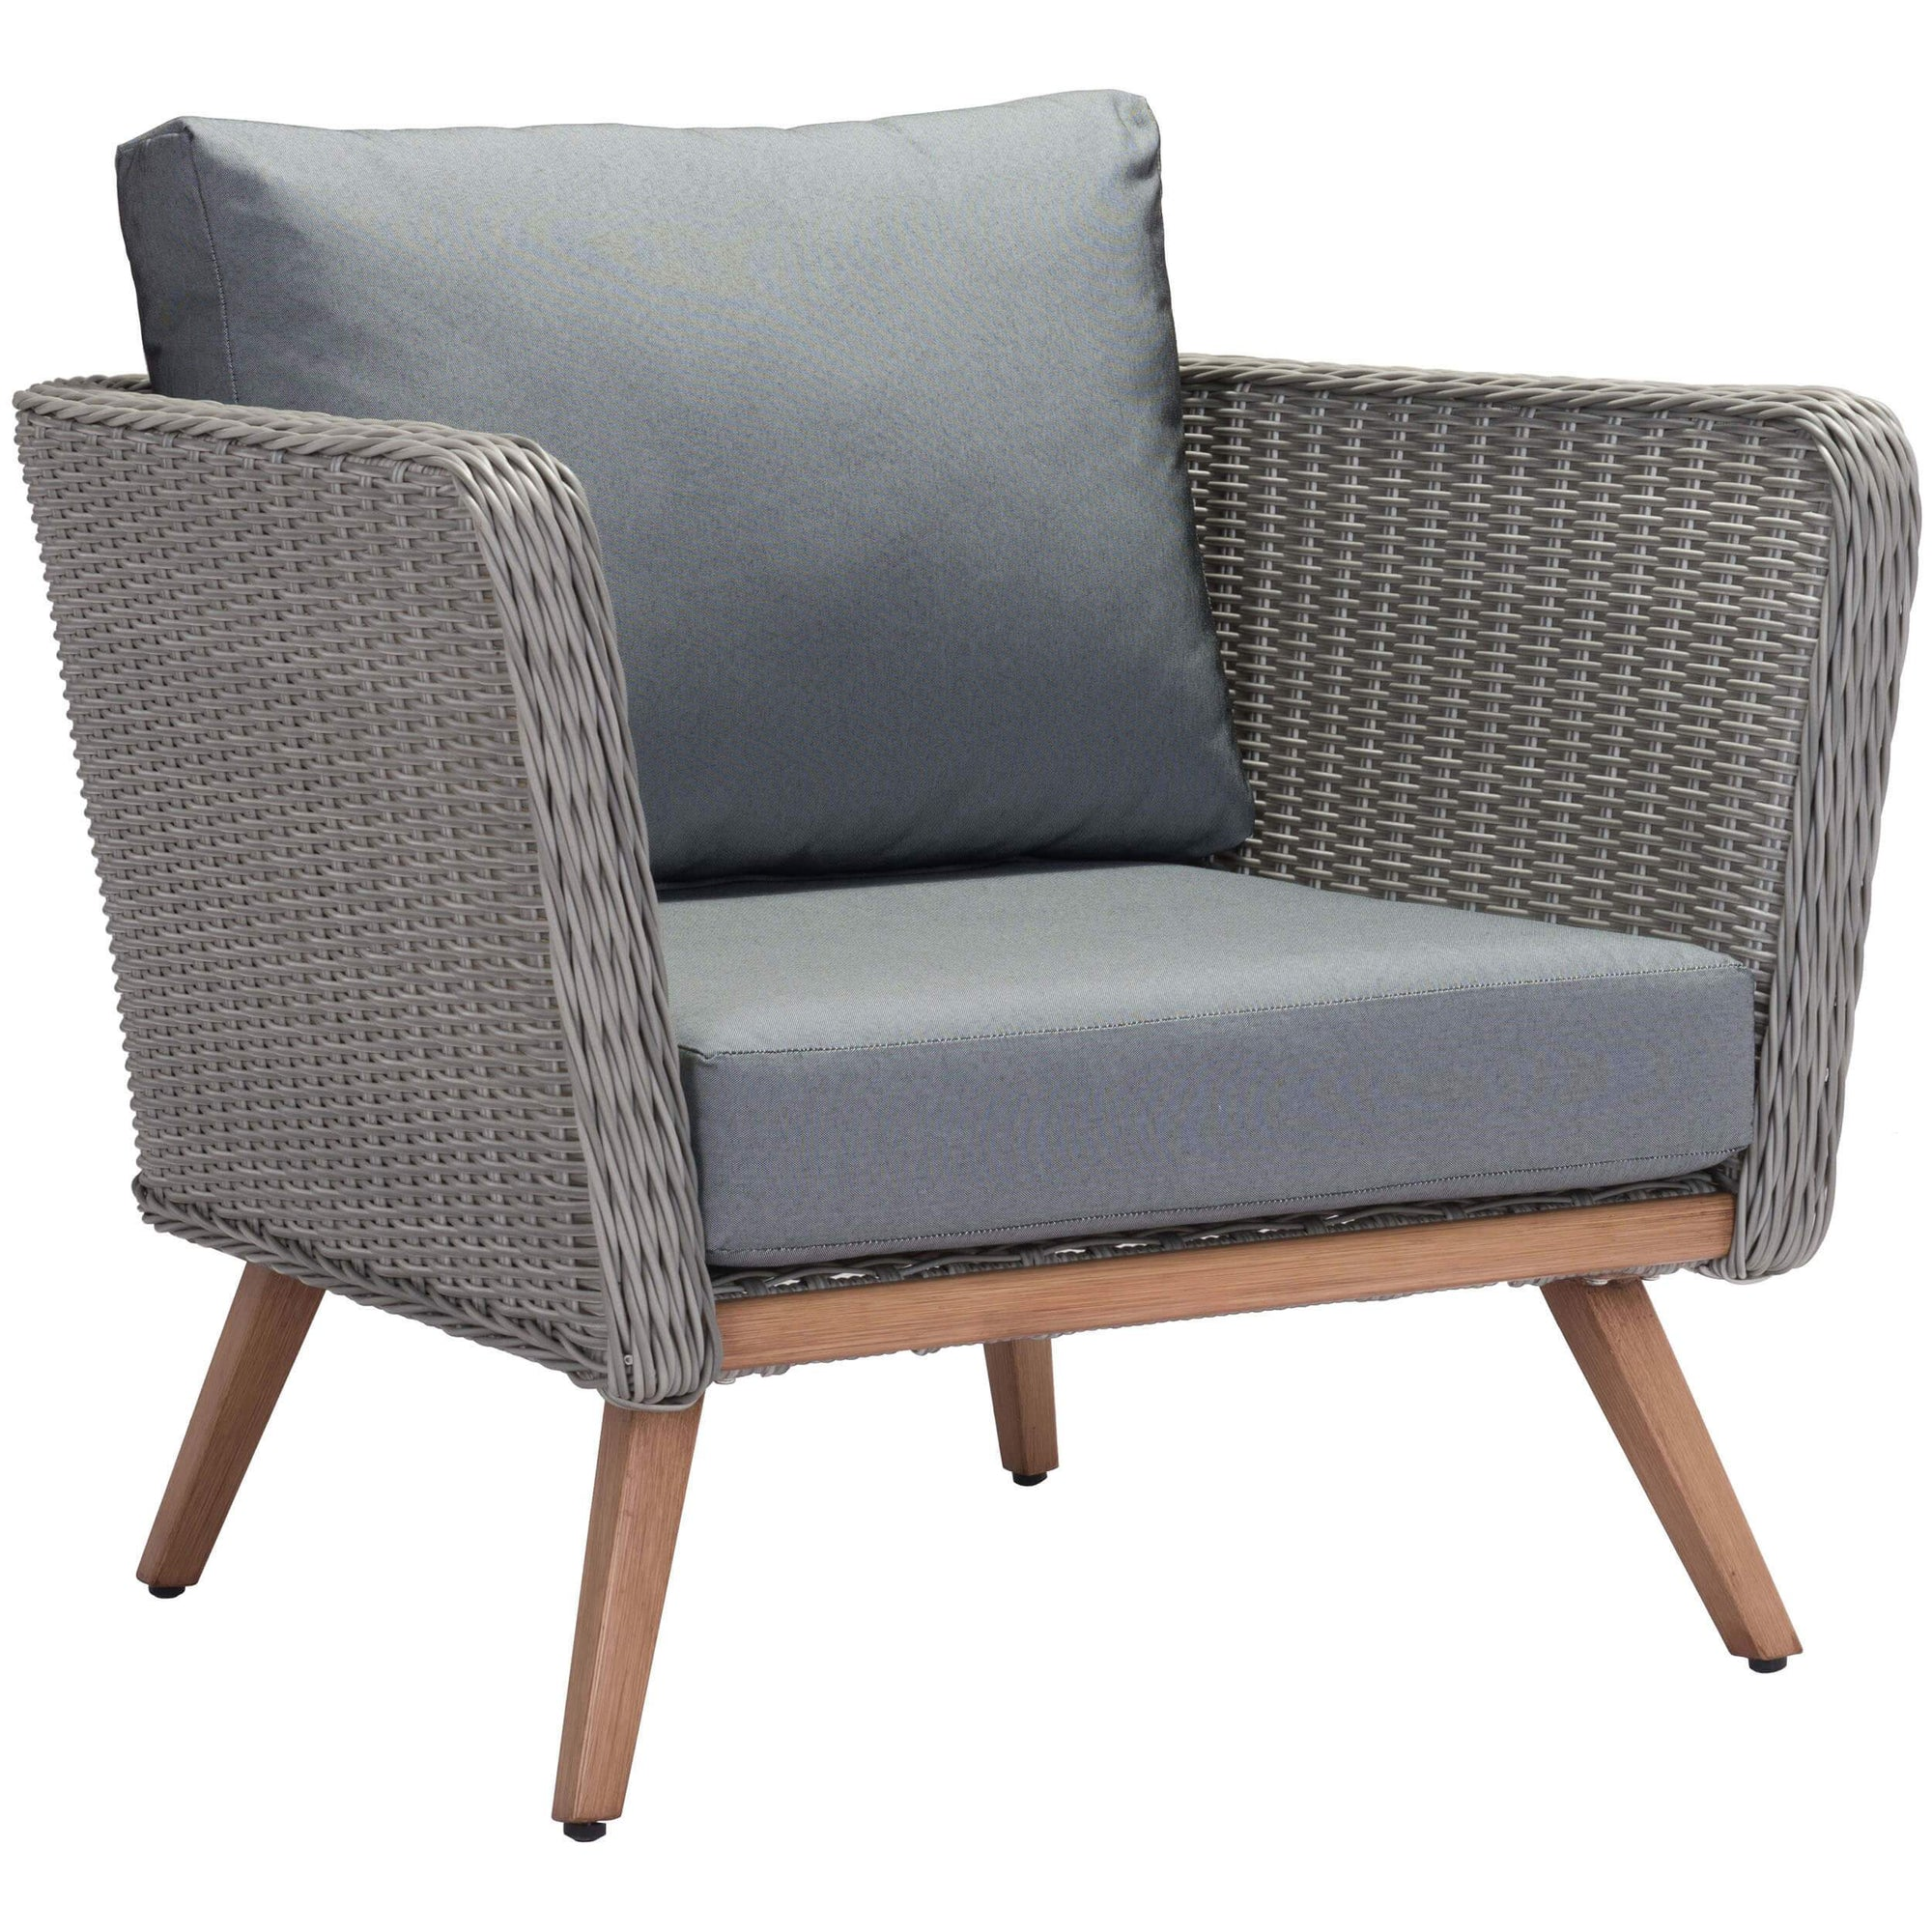 Brilliant Monaco Outdoor Arm Chair Gray Pdpeps Interior Chair Design Pdpepsorg